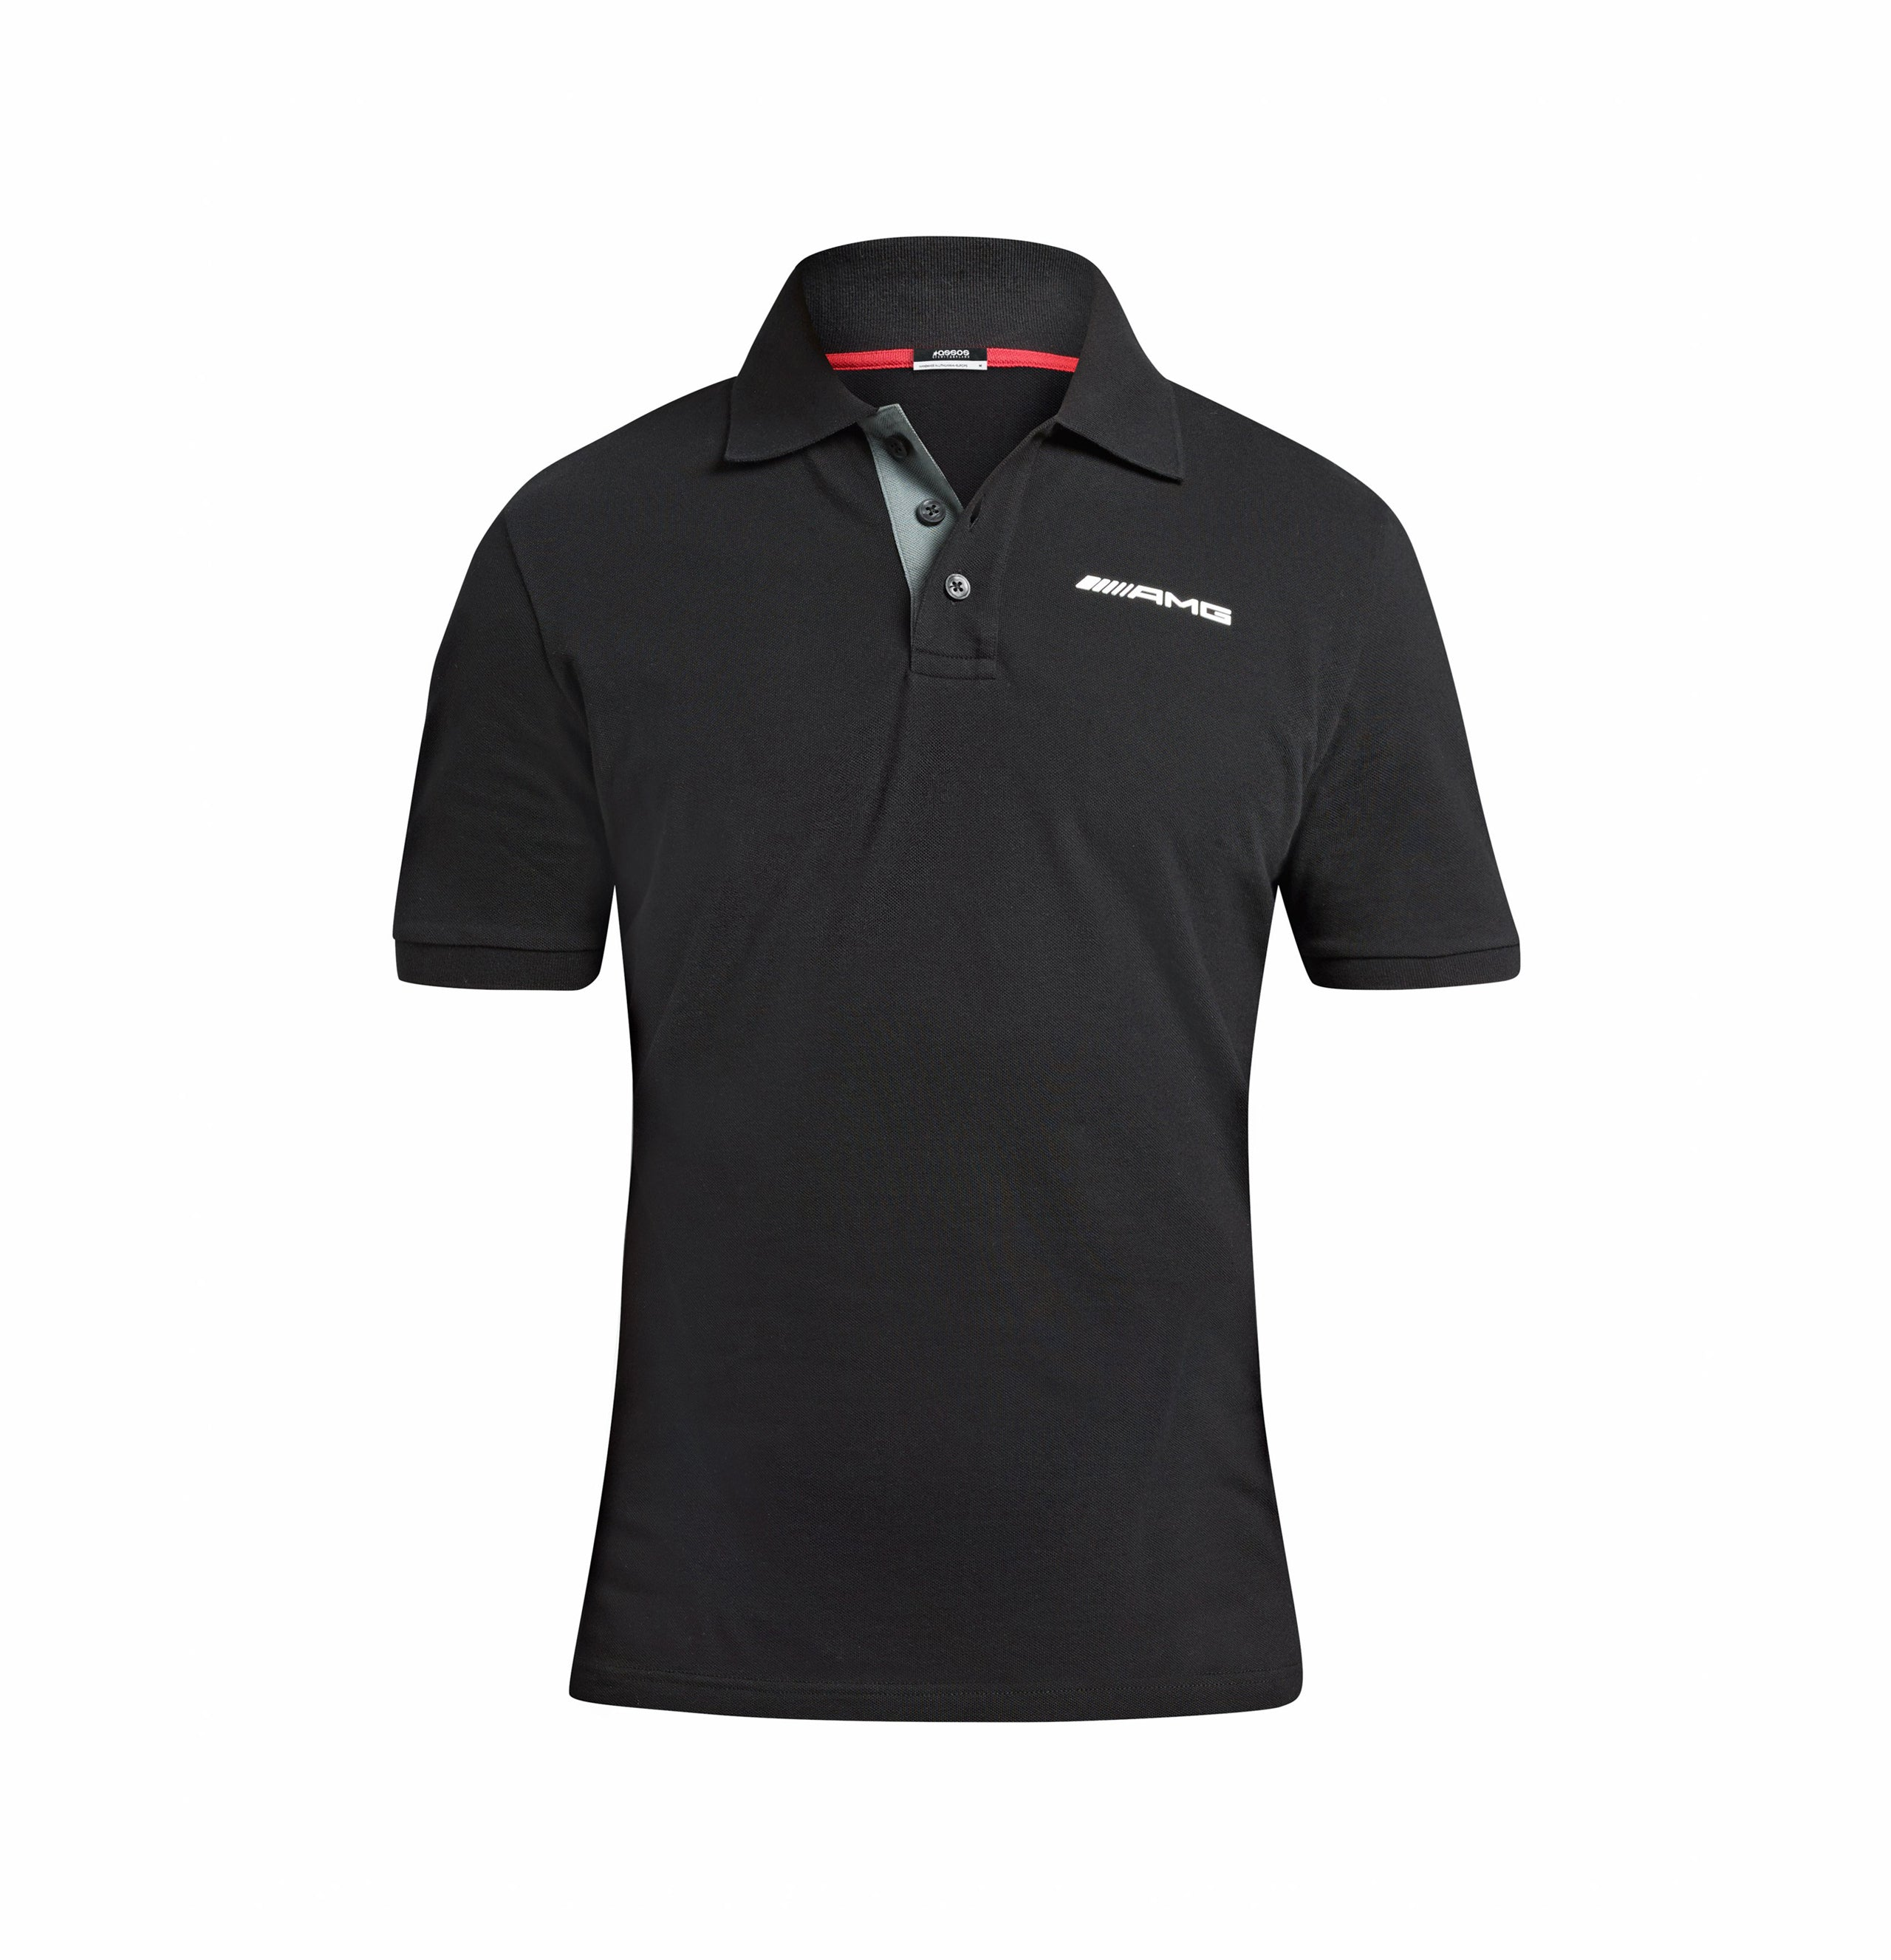 amg polo shirt sport the official amg performance wear. Black Bedroom Furniture Sets. Home Design Ideas